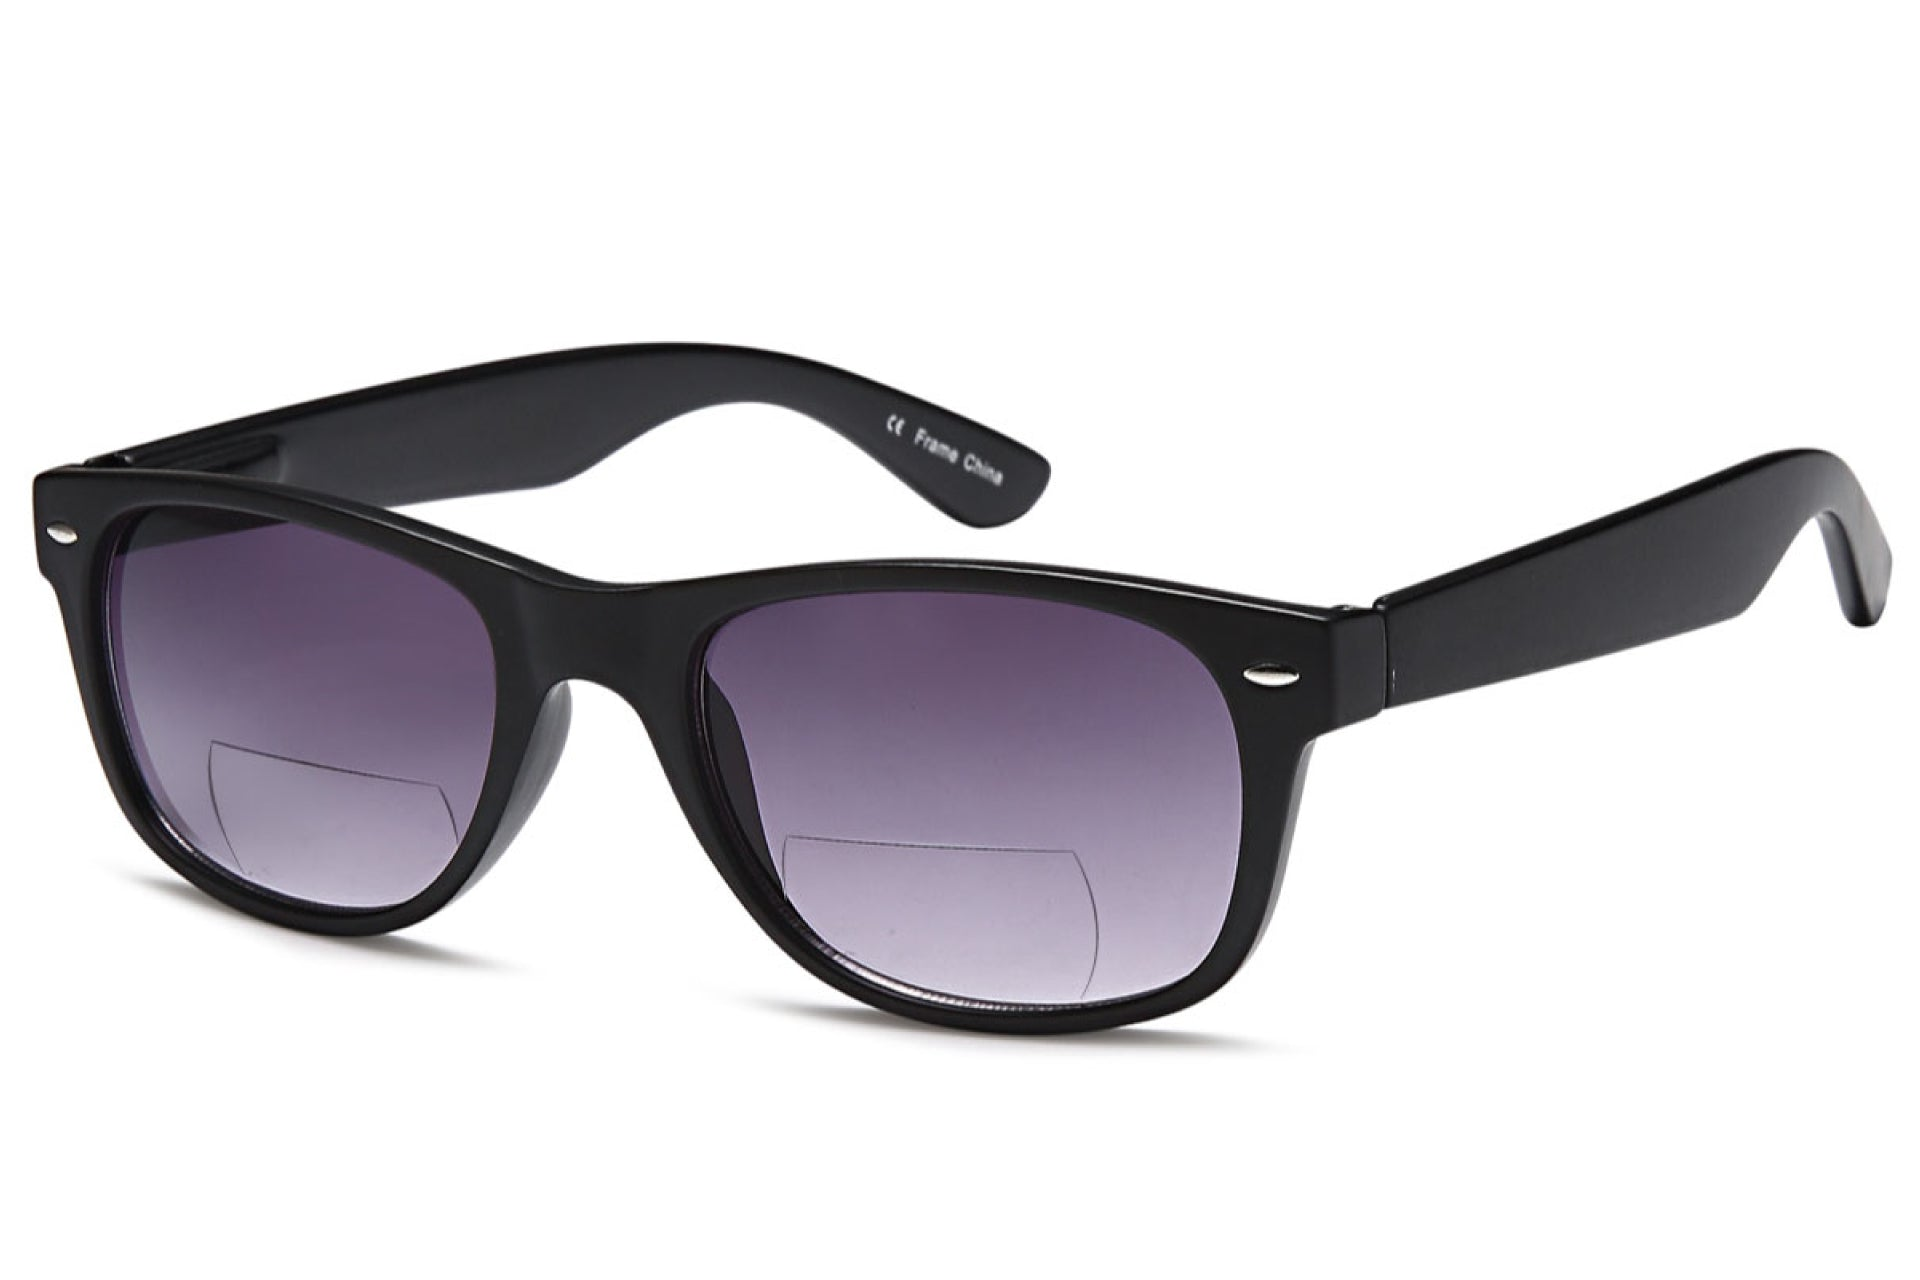 pair of gamma ray bifocal sunglasses with purple lens tint